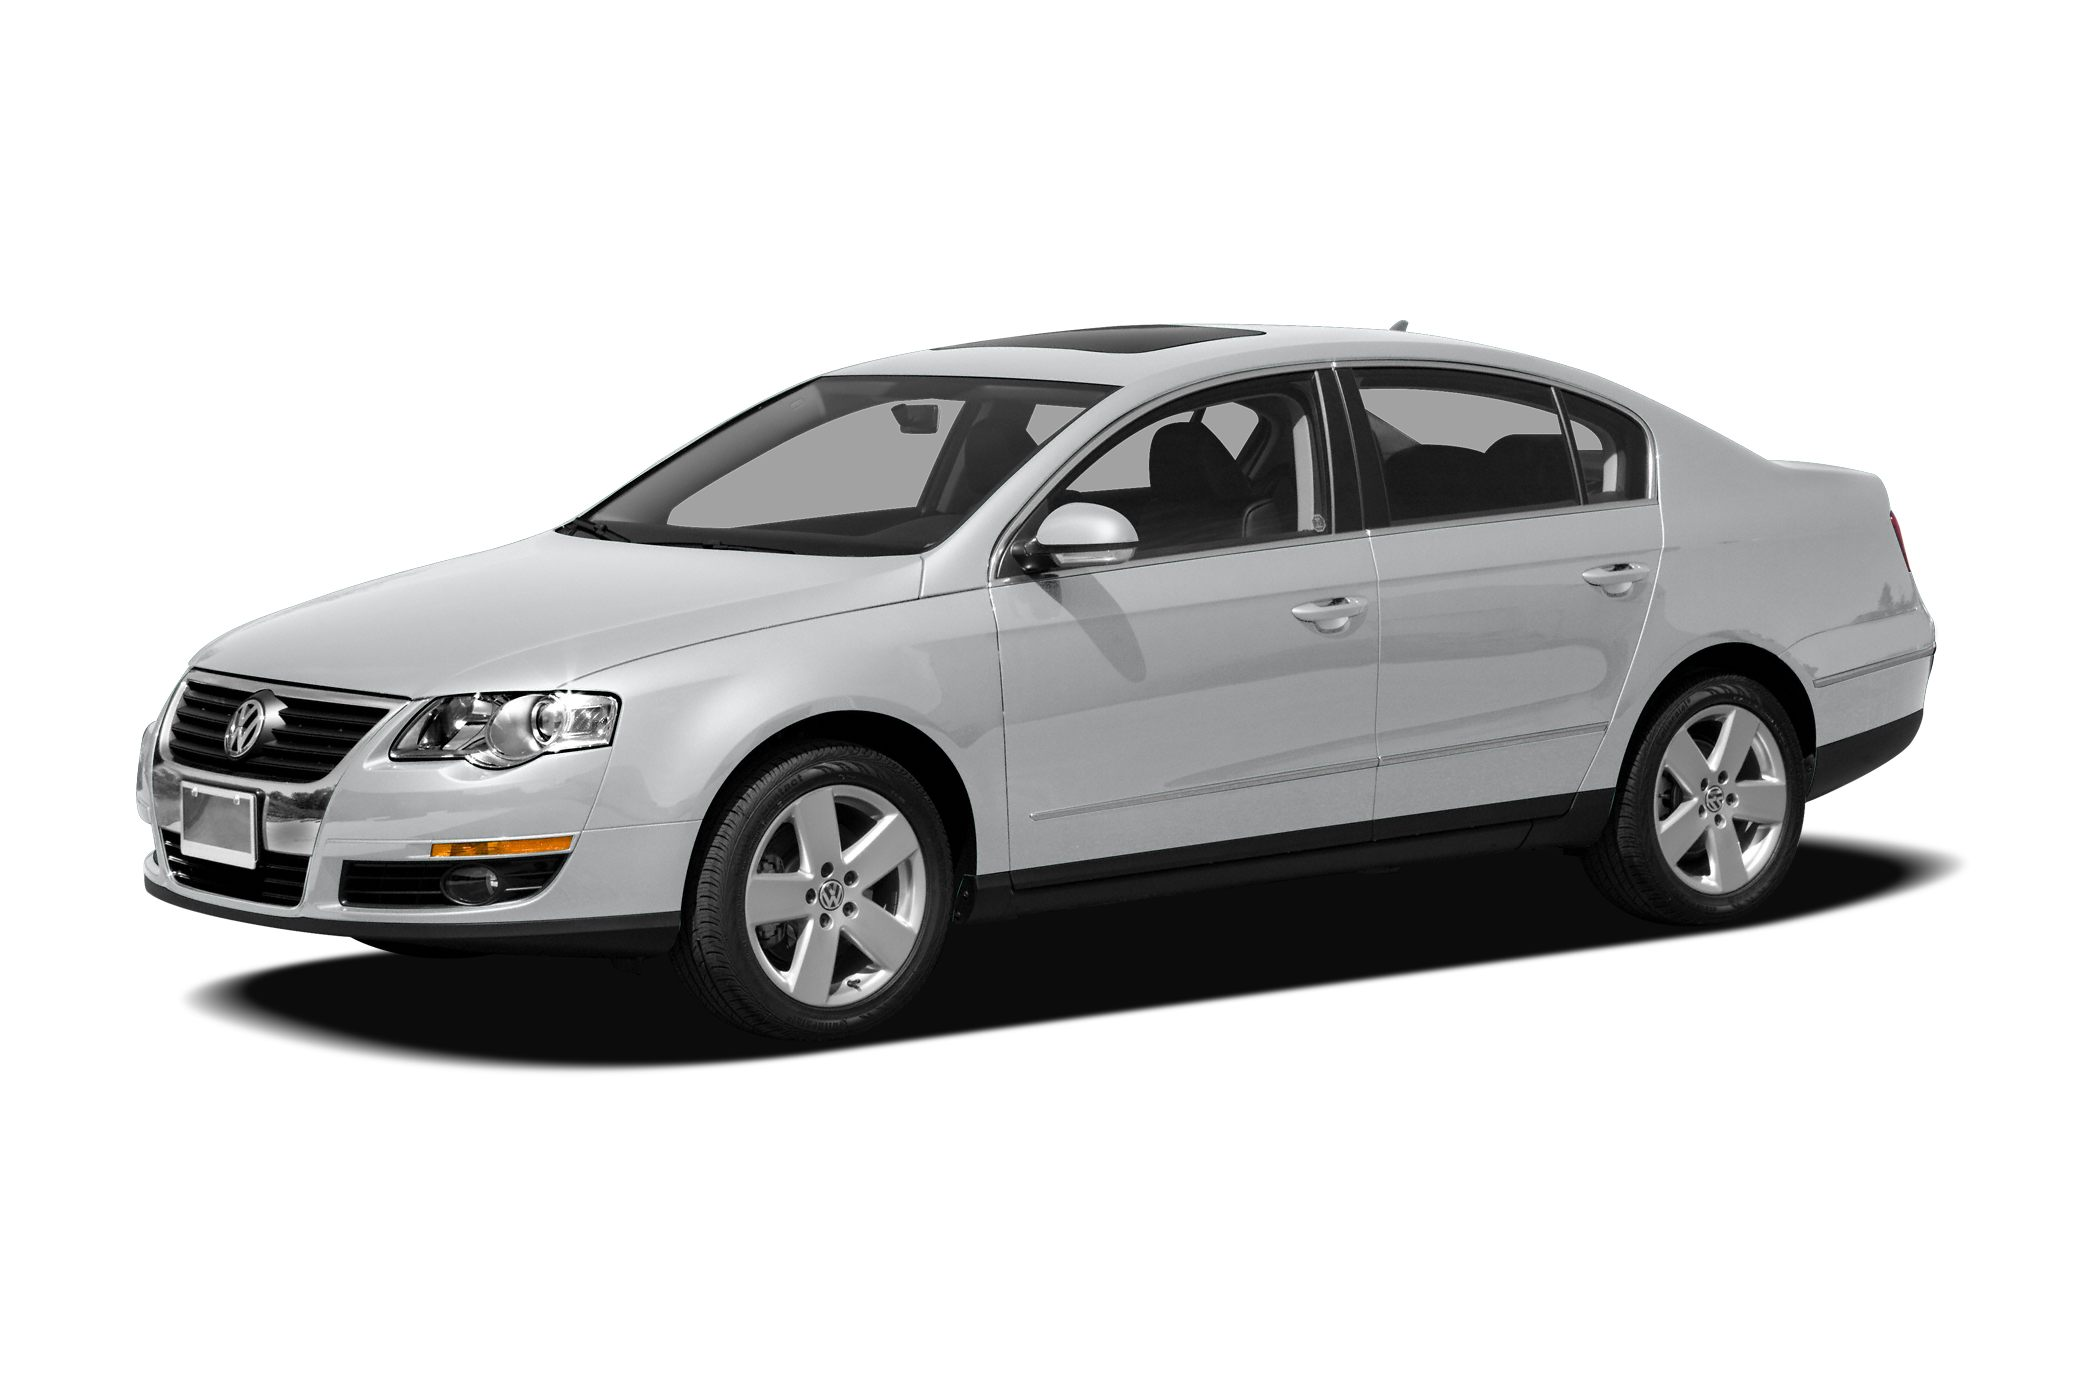 2008 Volkswagen Passat Lux OUR PRICESYoure probably wondering why our prices are so much lower t